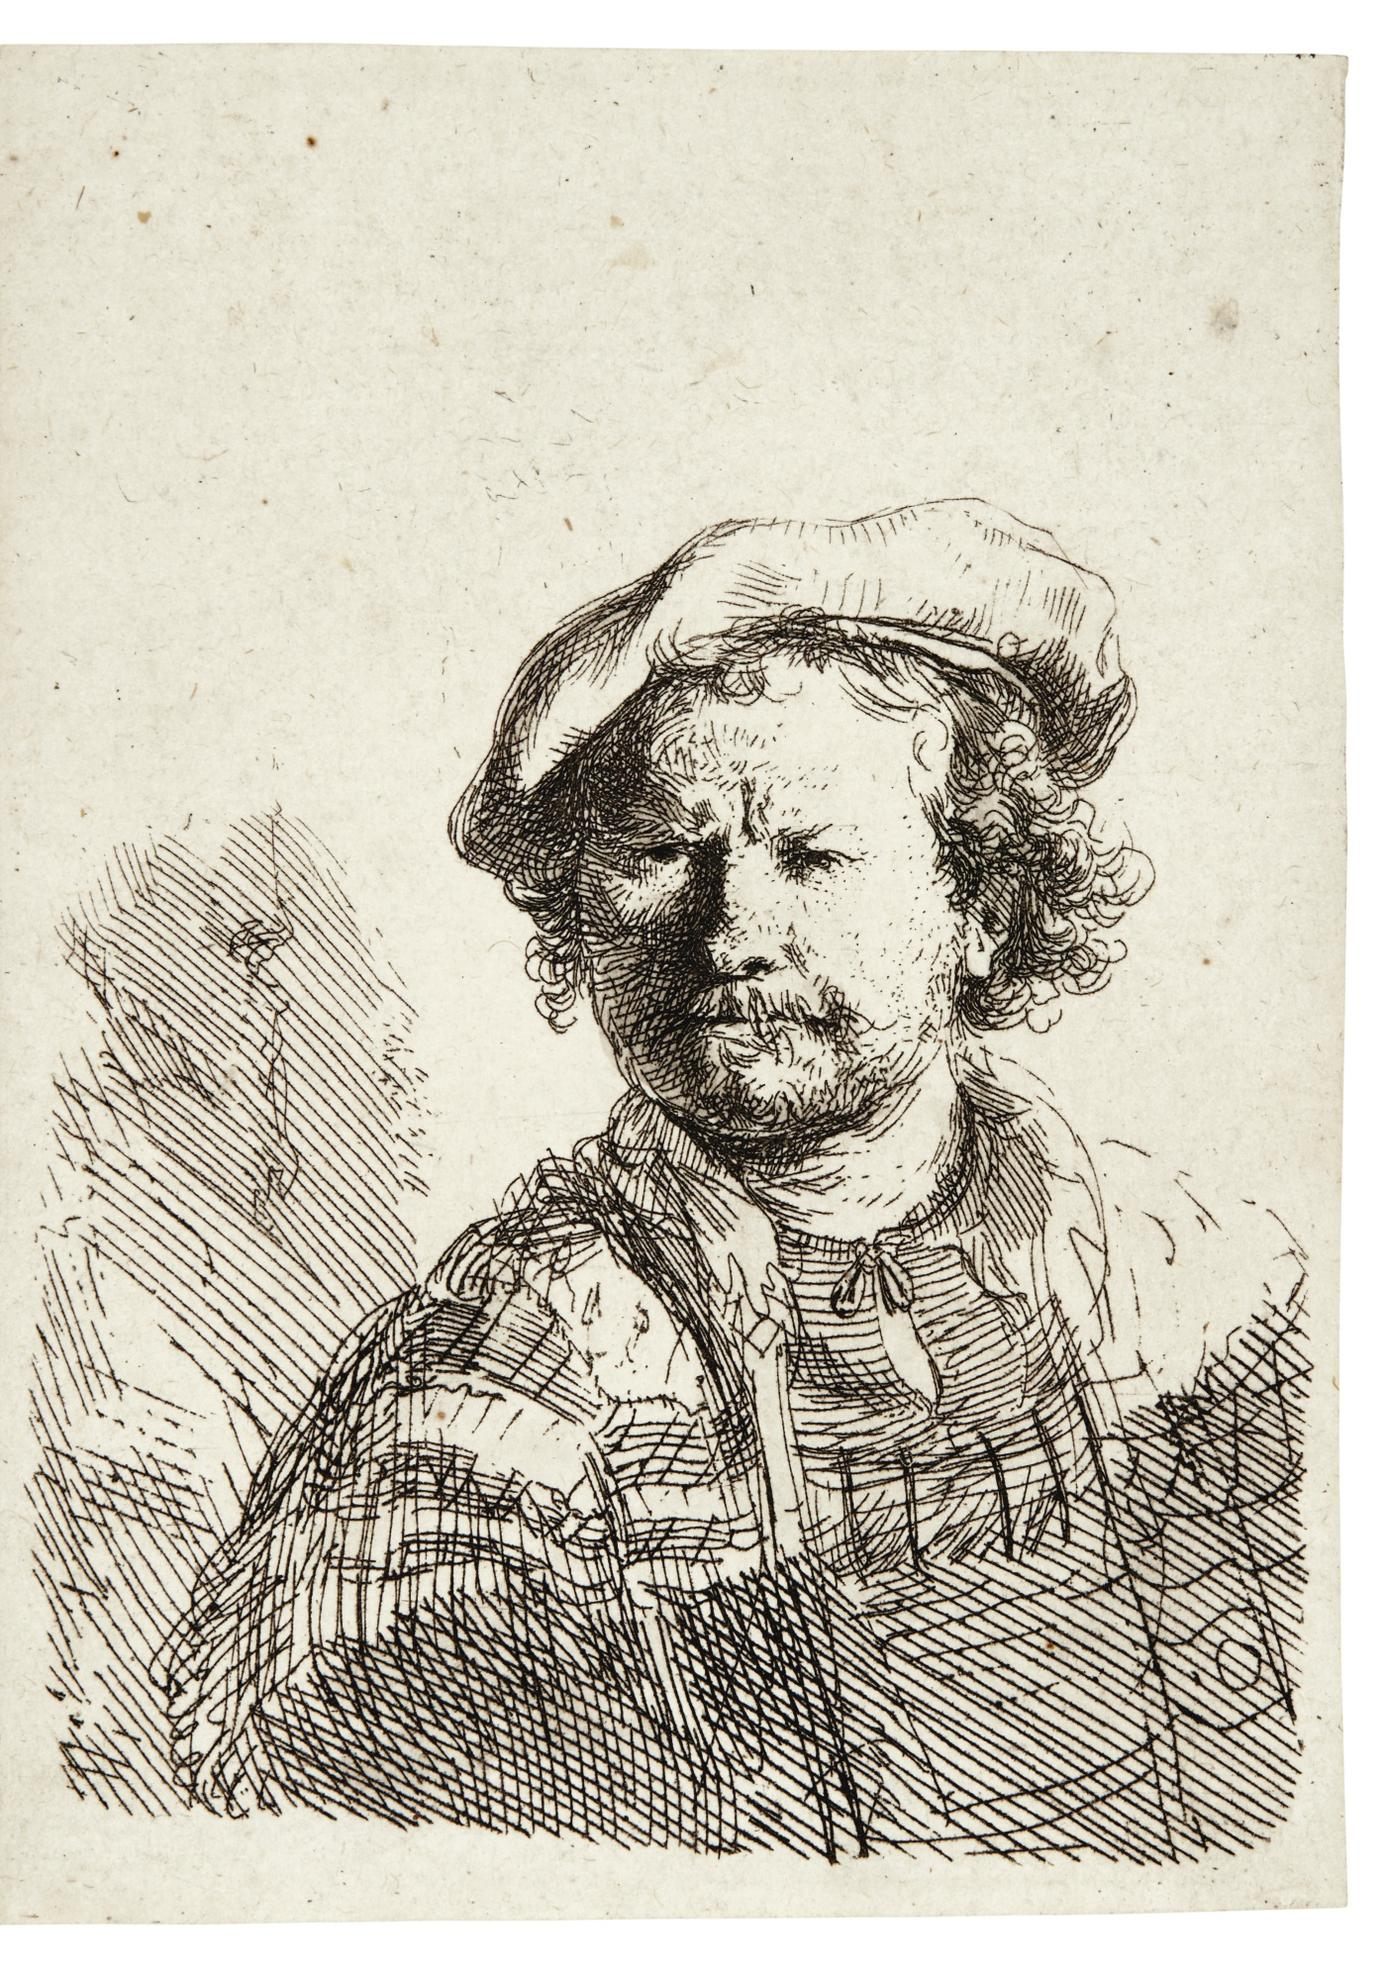 Rembrandt van Rijn-Self-Portrait In A Flat Cap And Embroidered Dress (B., Holl. 26; New Holl. 210; H. 157)-1642